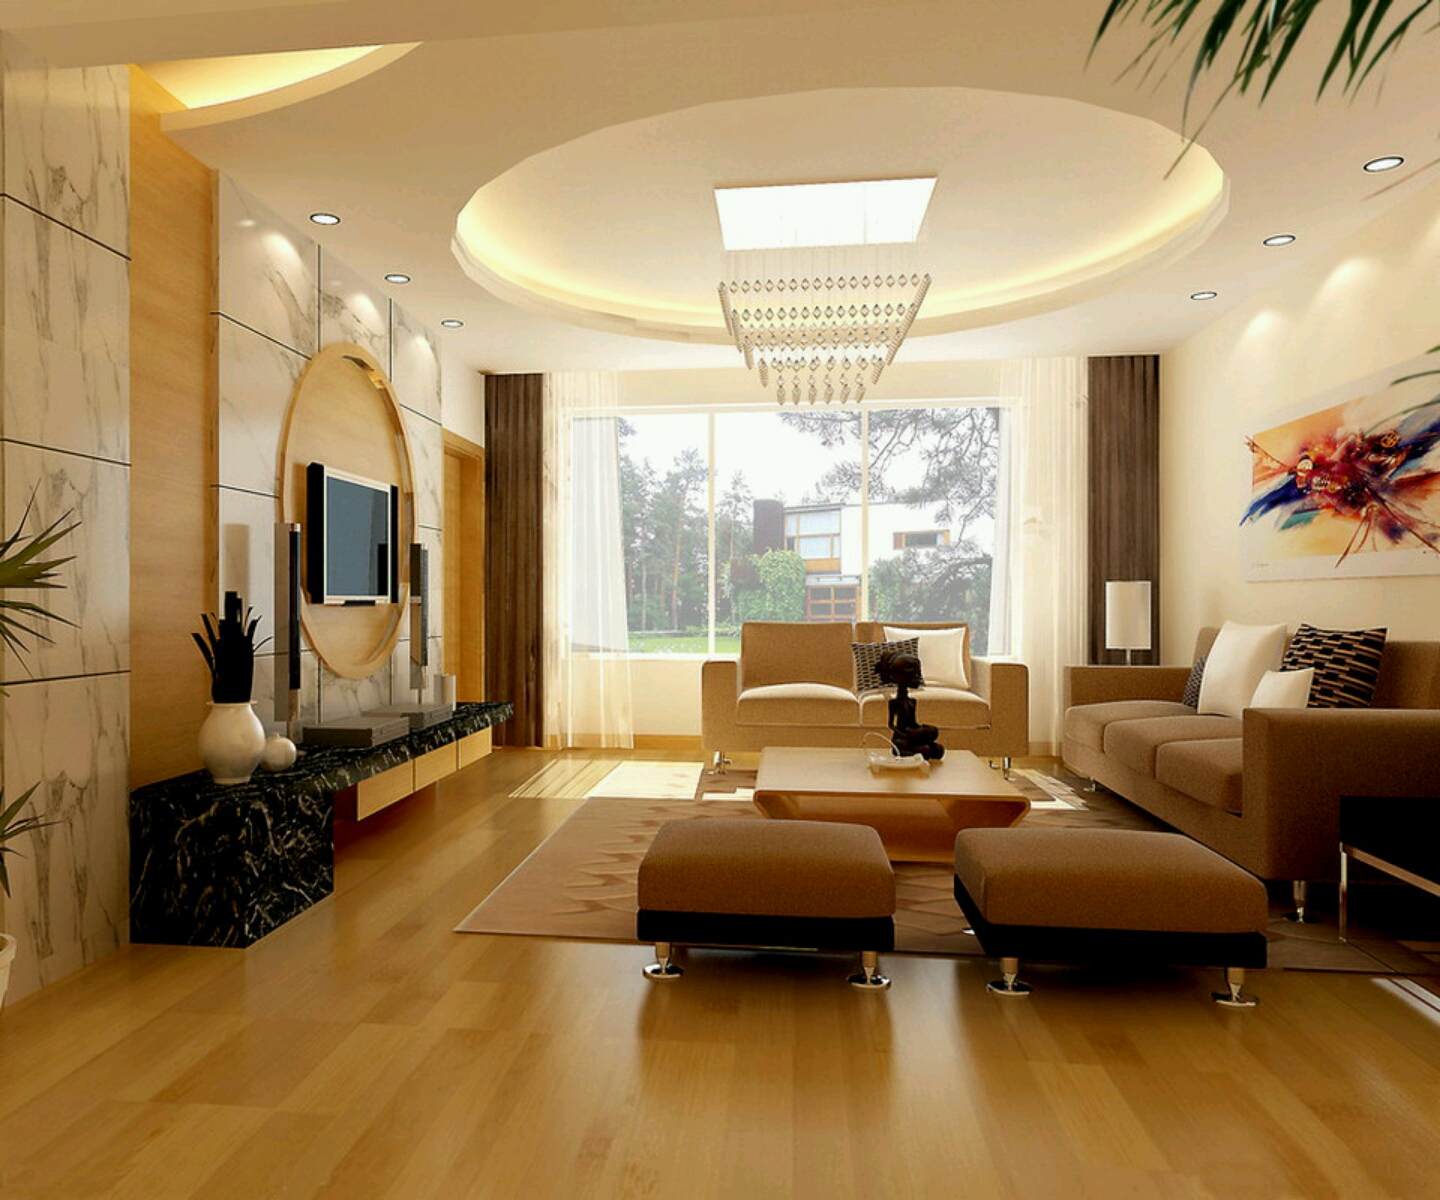 Modern interior decoration living rooms ceiling designs for Living room theme ideas